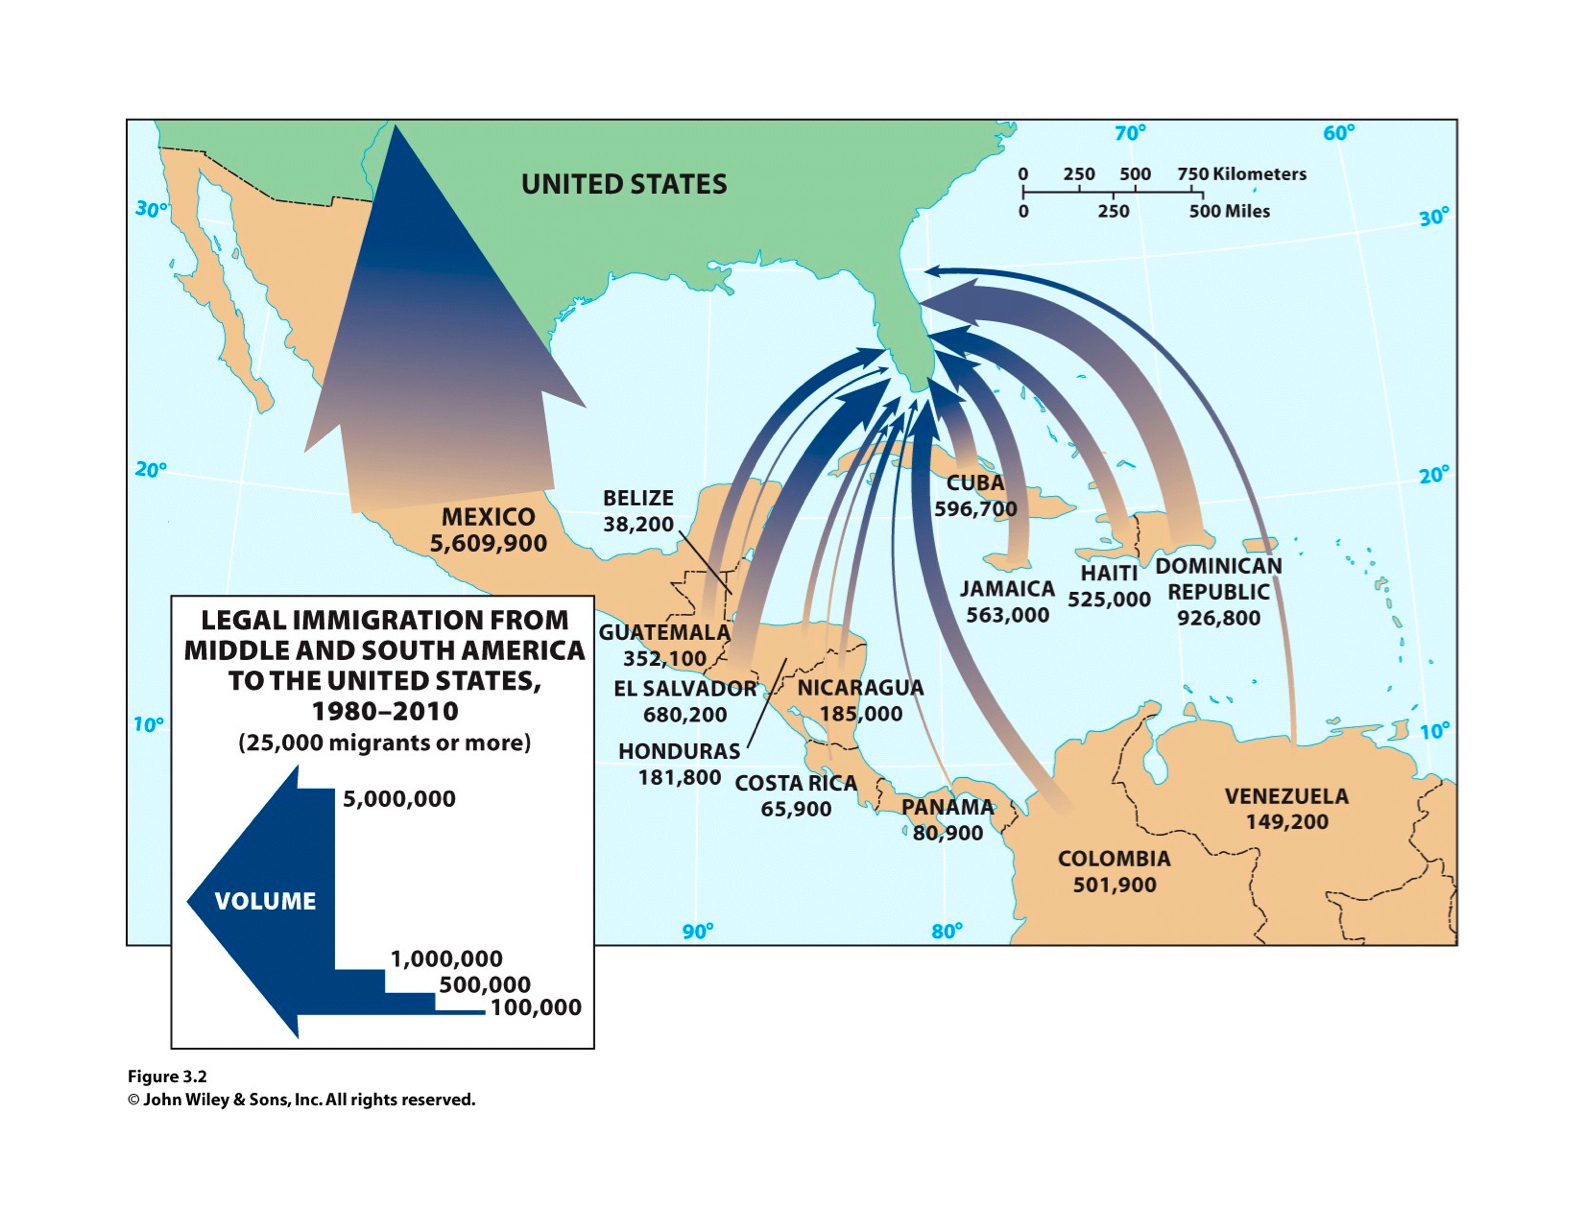 international migration in south america International immigration offices click on your local international field office from the list below to find details about office location, services and important instructions latin america, canada and the caribbean (lacc) district cuba - havana field office.